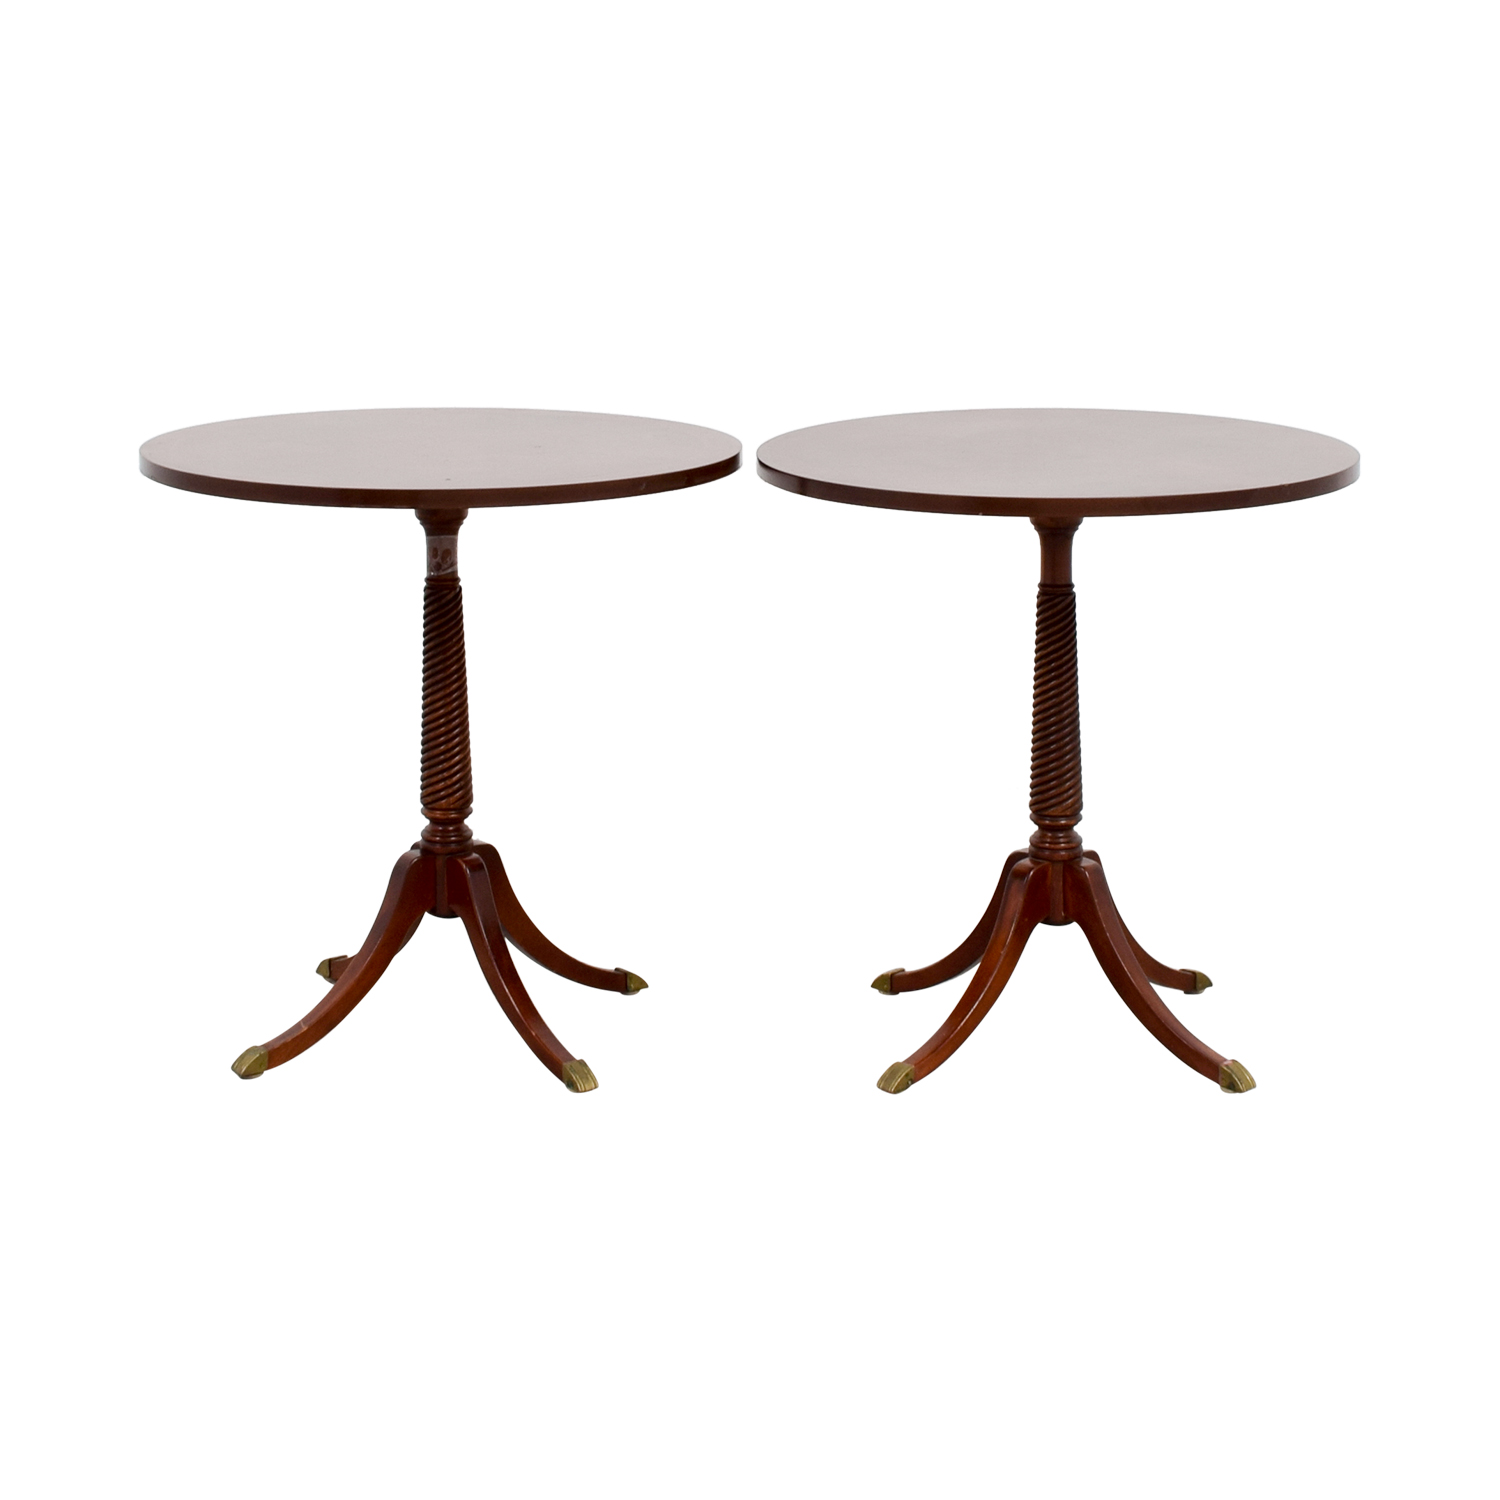 Furniture Masters Furniture Masters Round Wood End Tables for sale